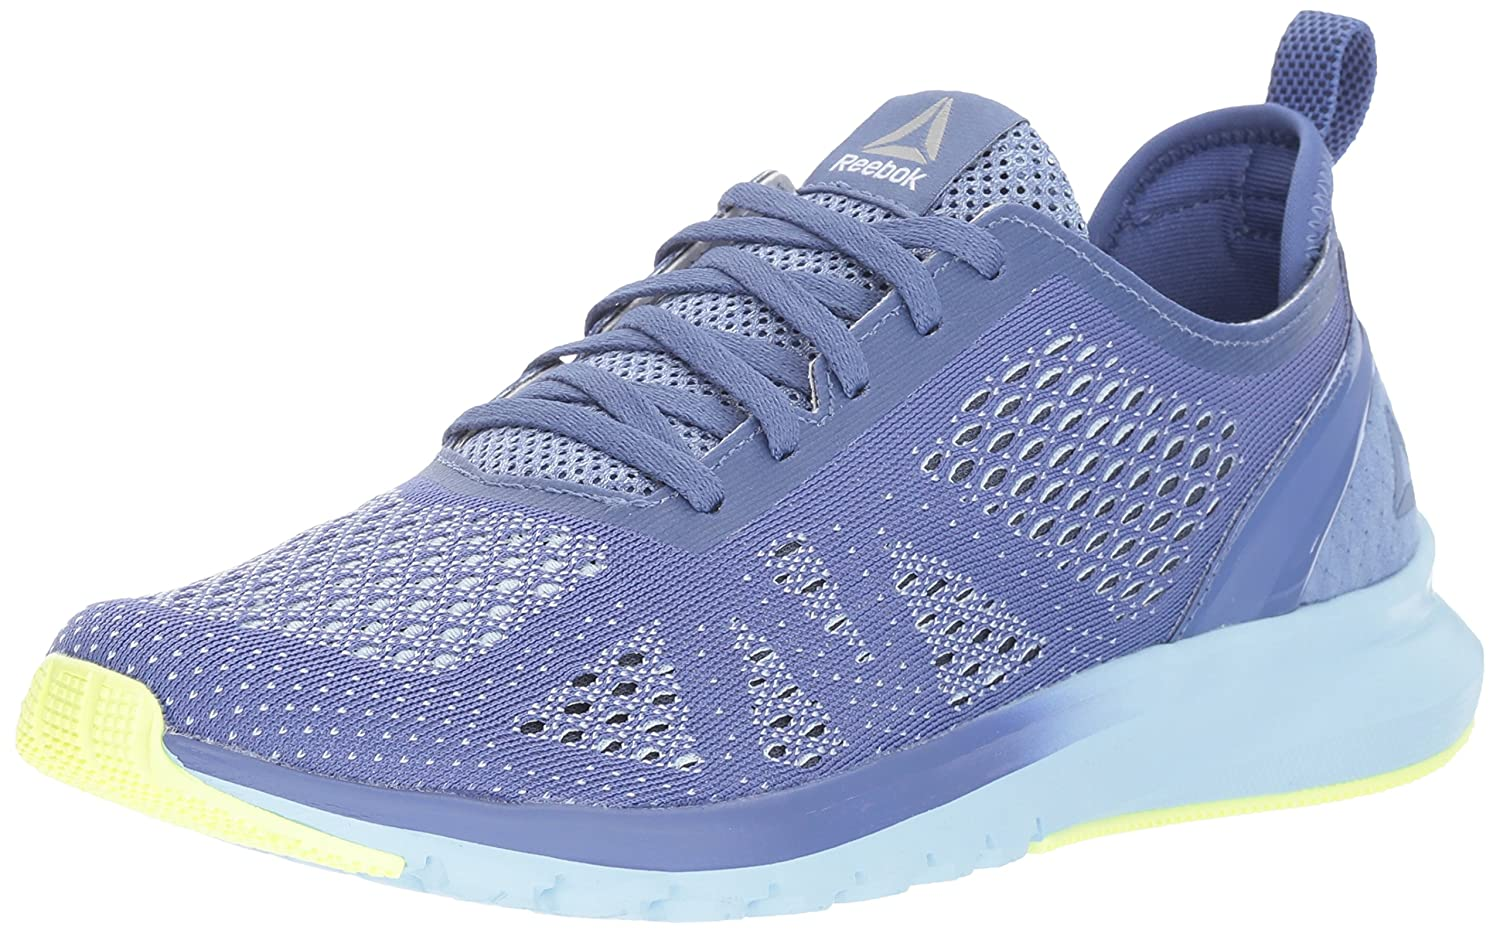 Reebok Women's Print Smooth Clip Ultk Track Shoe B01MS430K3 10.5 B(M) US|Lilac Shadow/Fresh Blue/Electric Flash/White/Smoky Indigo